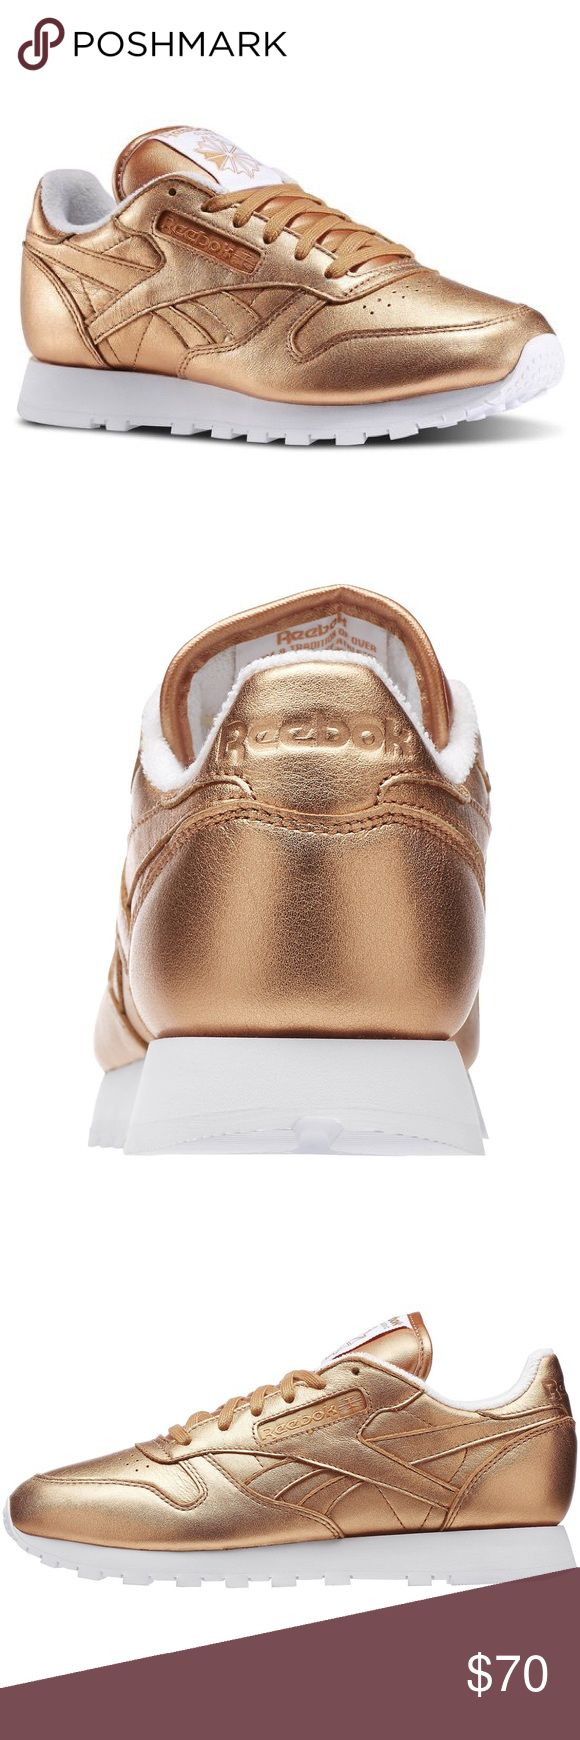 #151// • HP • LIMITED EDITION • WOMEN CLASSICS REEBOK X FACE STOCKHOLM CLASSIC LEATHER SPIRIT [ROSE GOLD] 7.5 worn a couple of times • will upload pictures of the actual kicks soon! Originally $79.99 + tax + shipping (only avail on their website!) Reebok Shoes Athletic Shoes